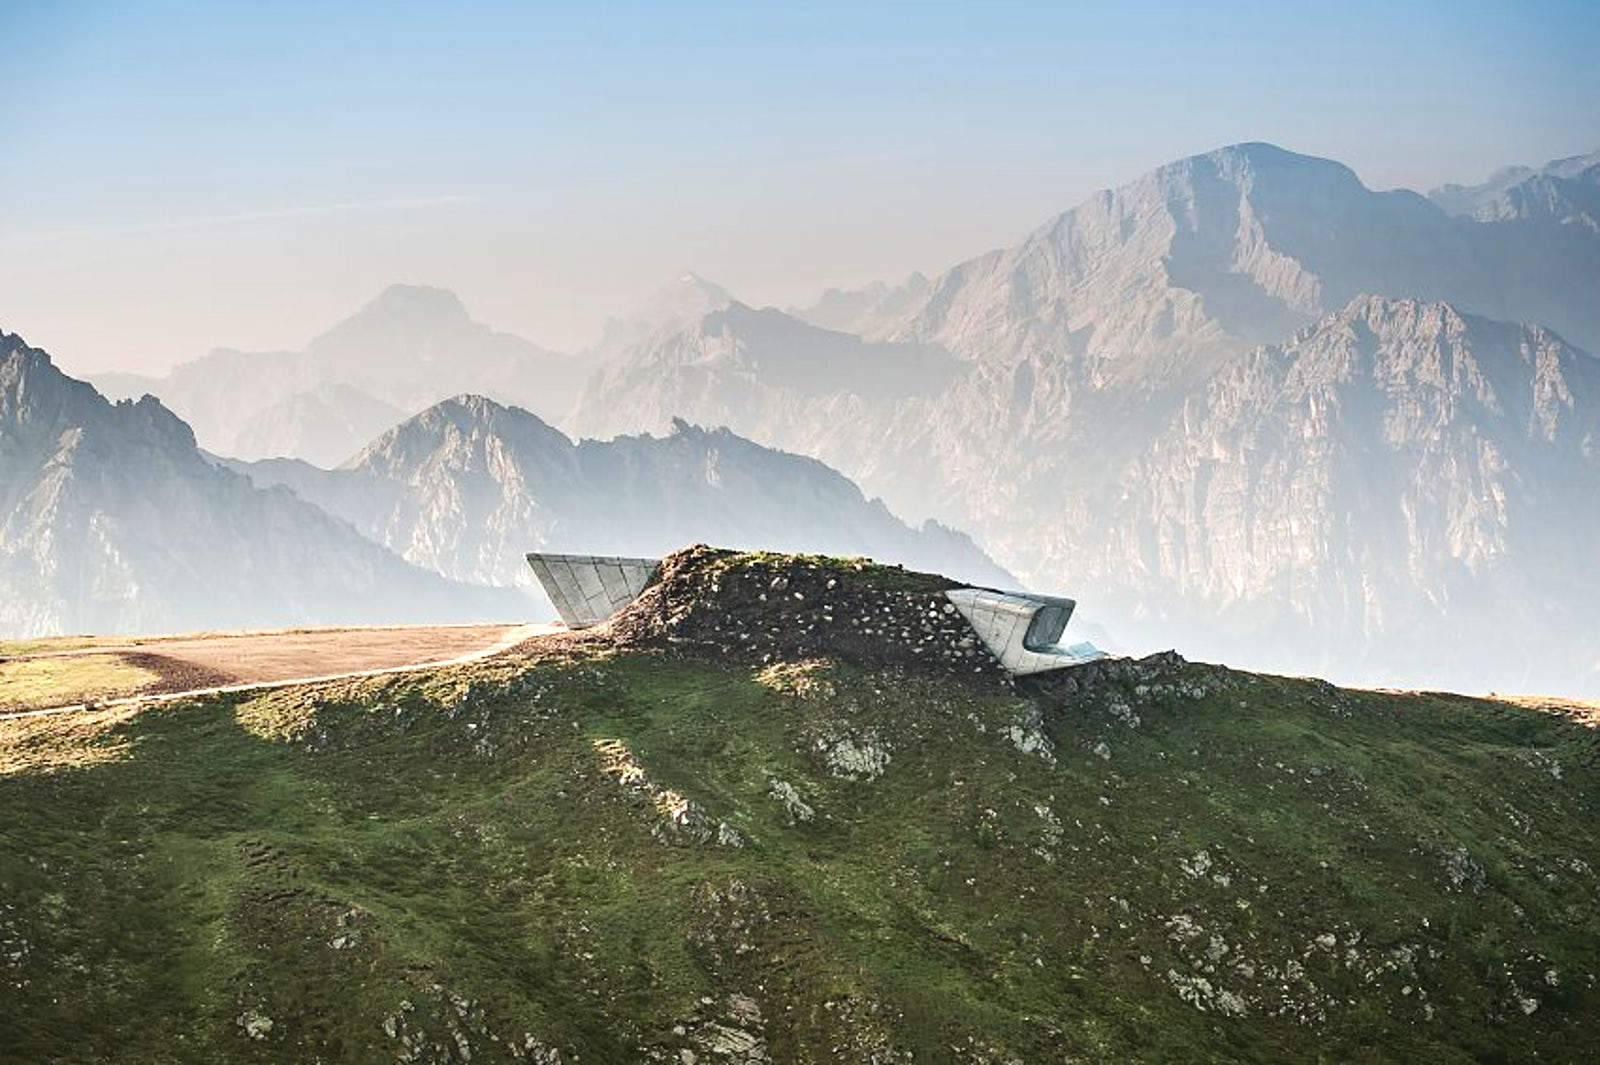 Cover picture credits: ©Messner Mountain Museum